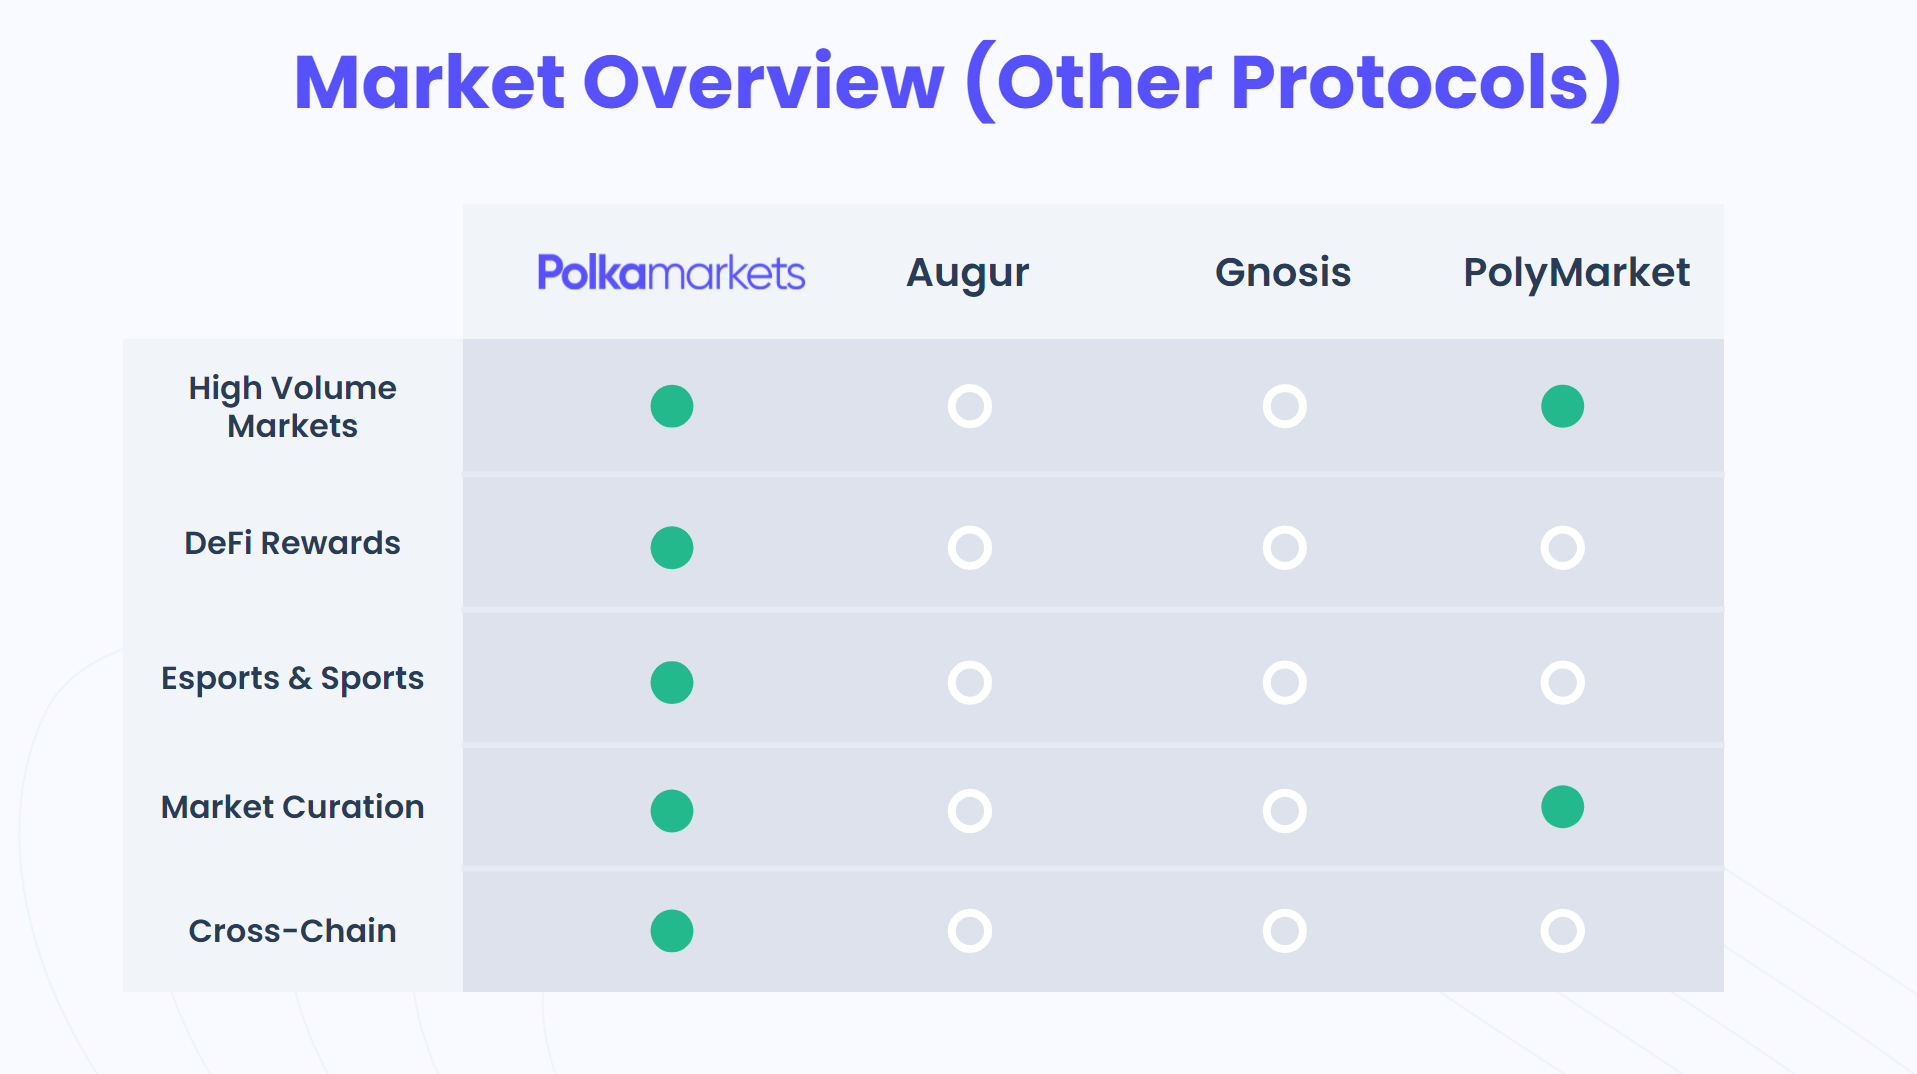 Market Overview (Other Protocols)